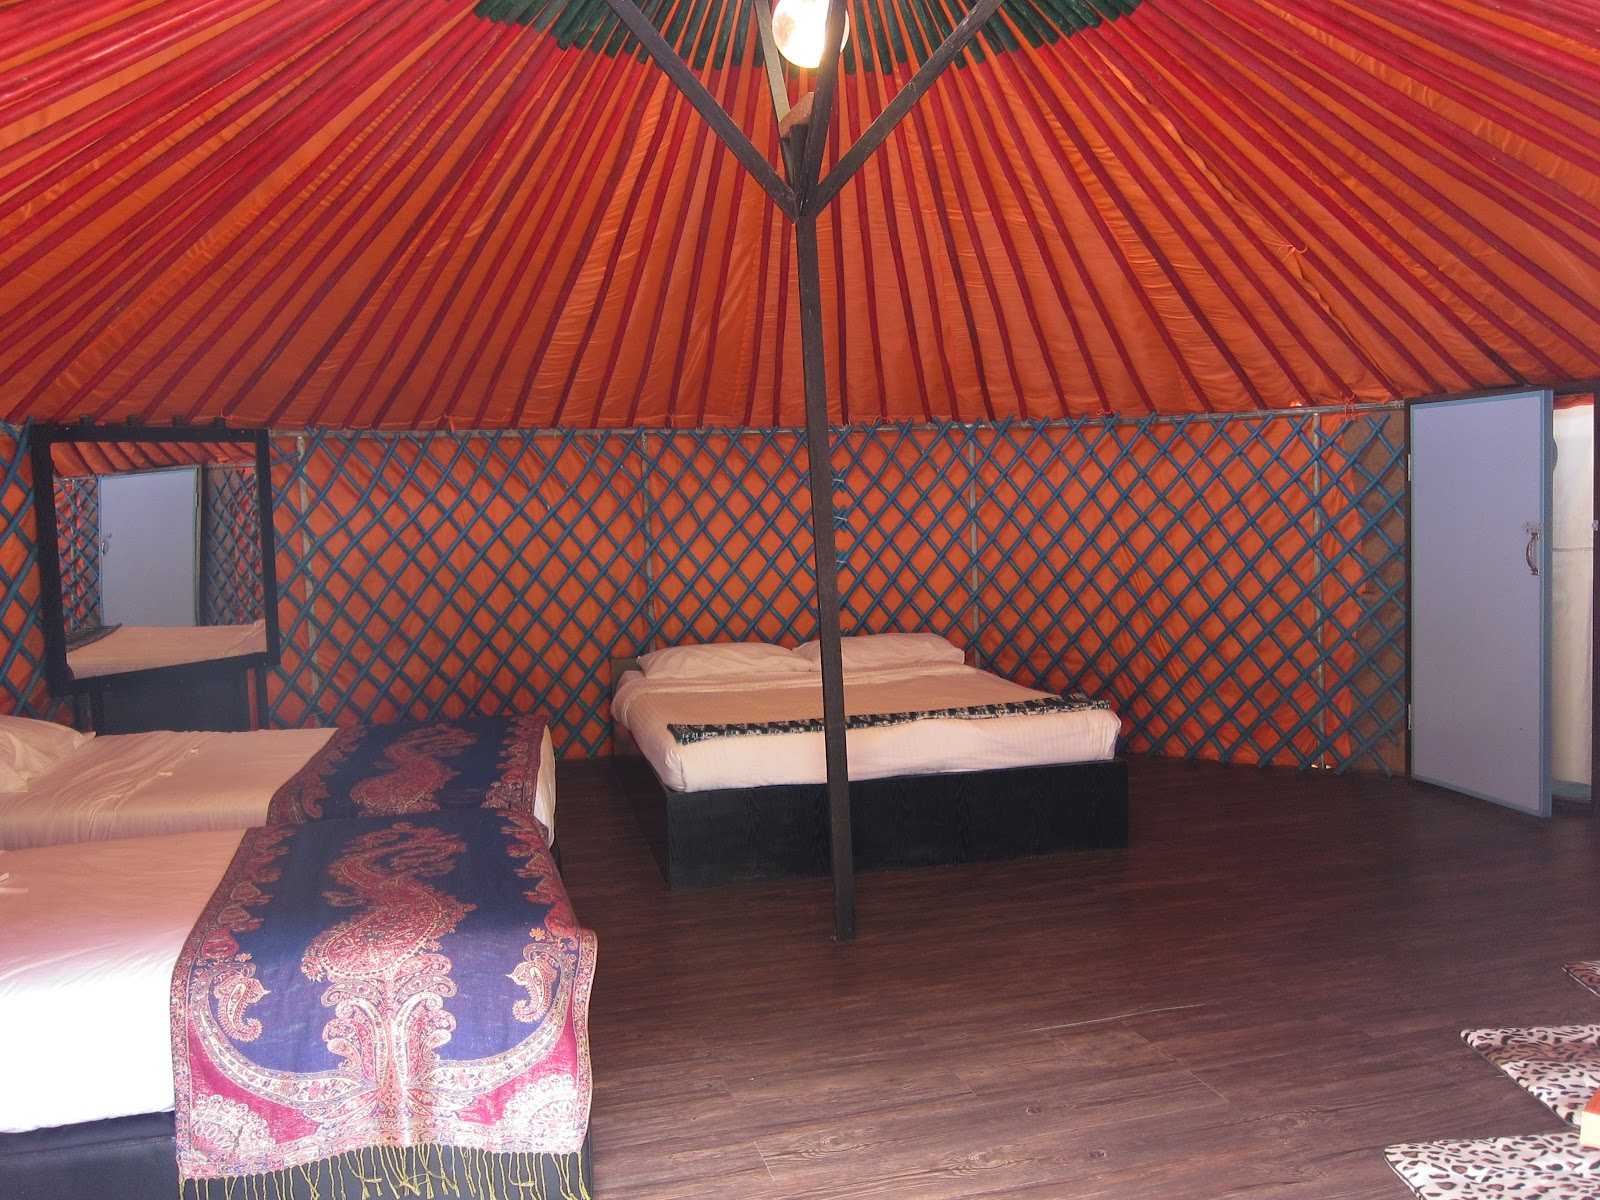 The yurt's interiors are decked out in Mongolian inspired designs.